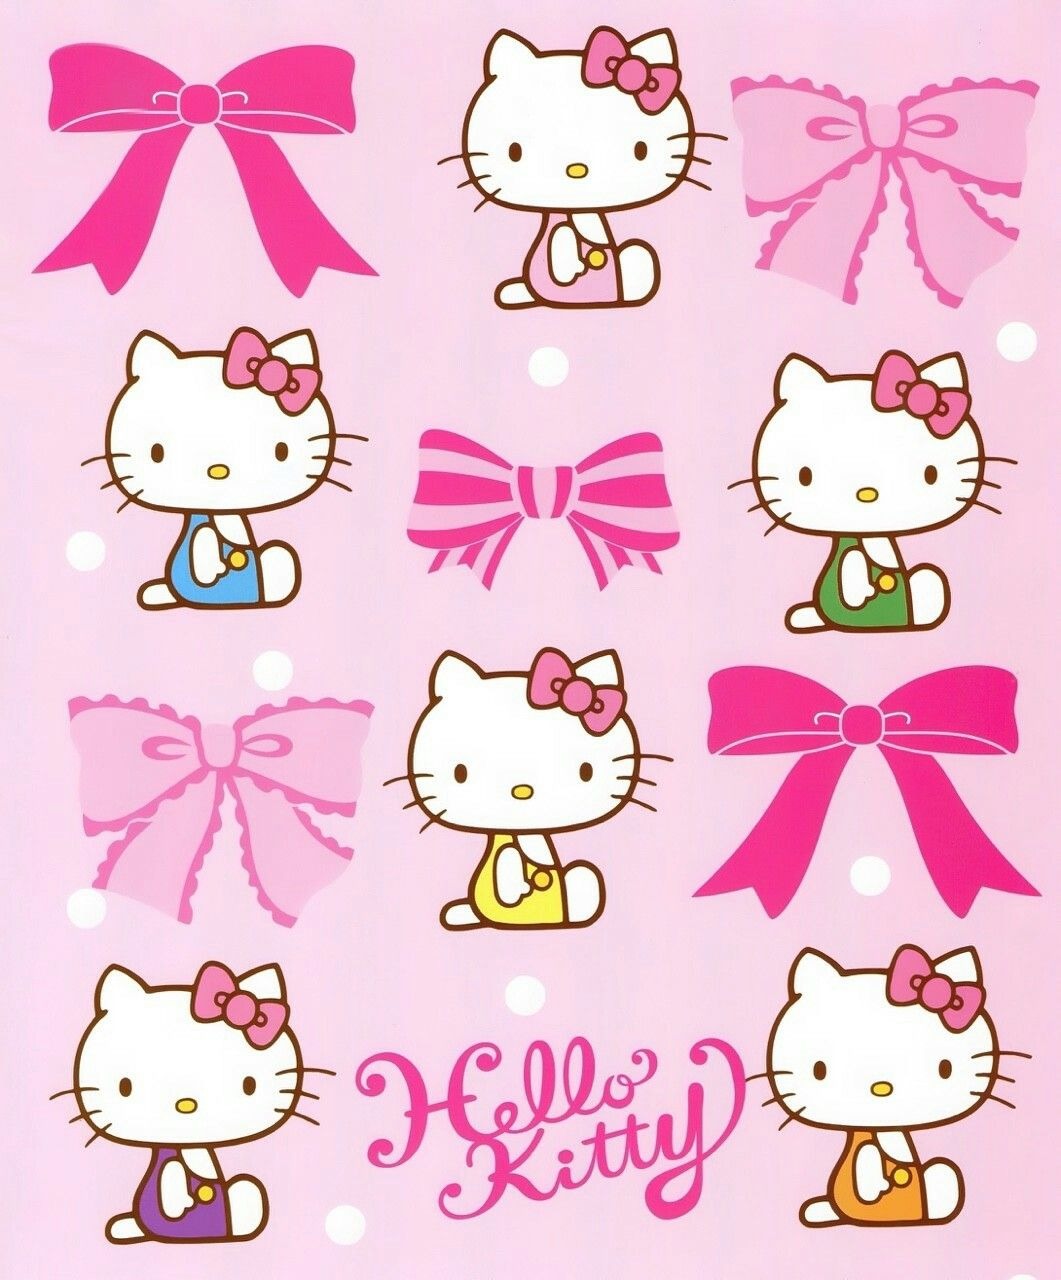 Amazing Wallpaper Hello Kitty Painting - 9f78411823d700a1fb319842a805ed5c  Pictures_285093.jpg